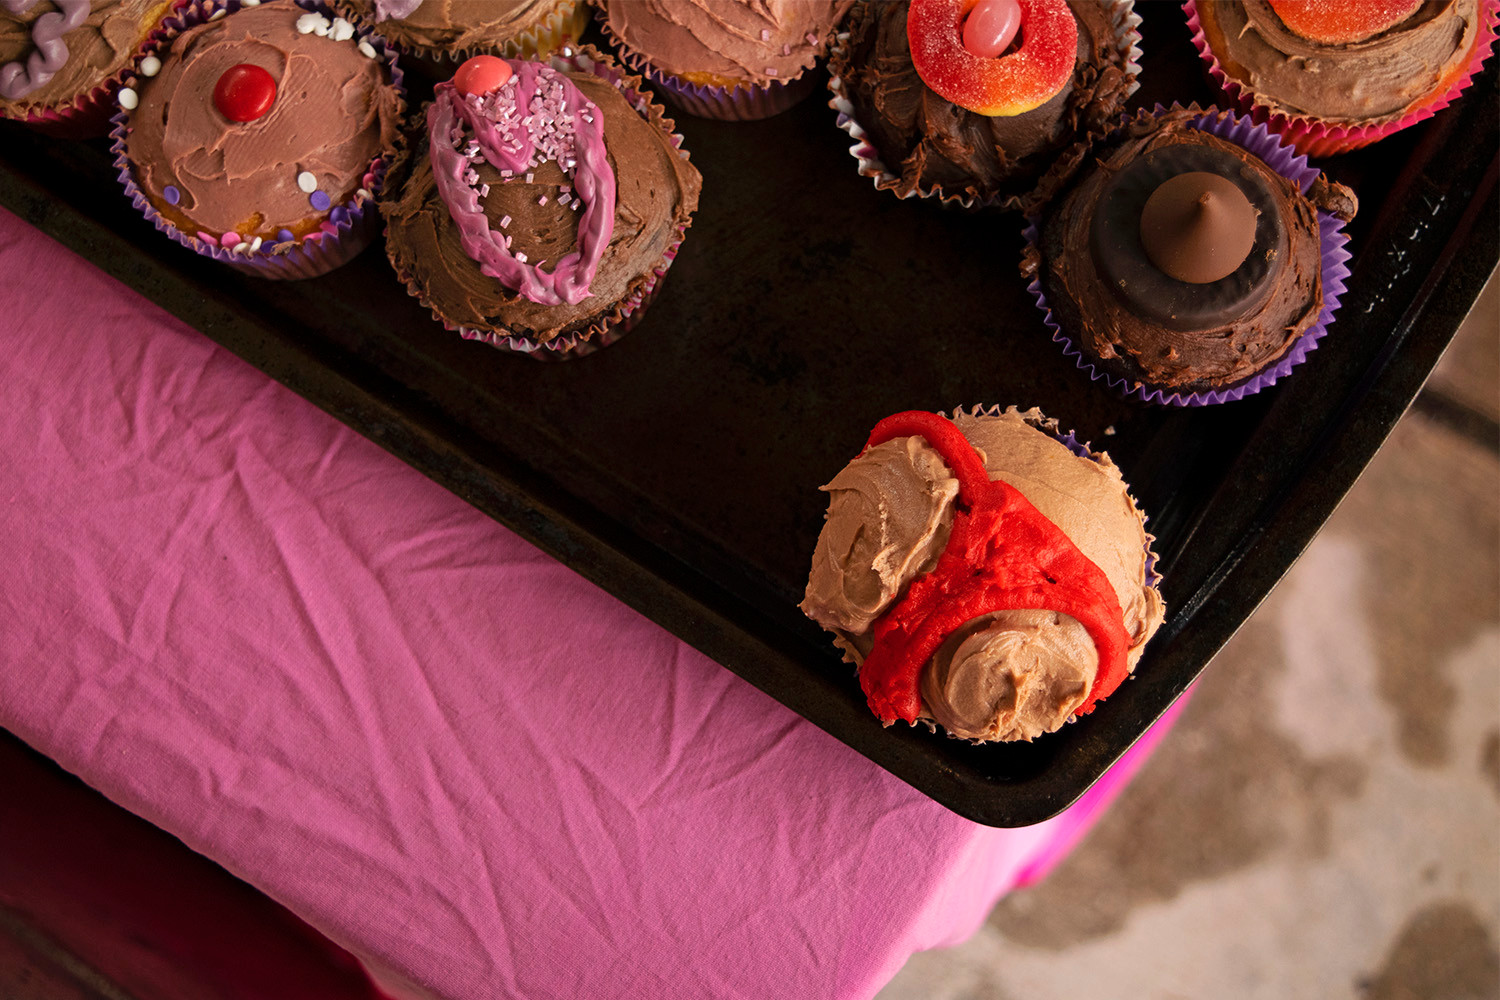 Cupcakes sold as part of a Valentines Day fundraiser hosted by the Planned Parenthood Generation WWU club. Western Washington University, Bellingham, WA. February 14, 2018.